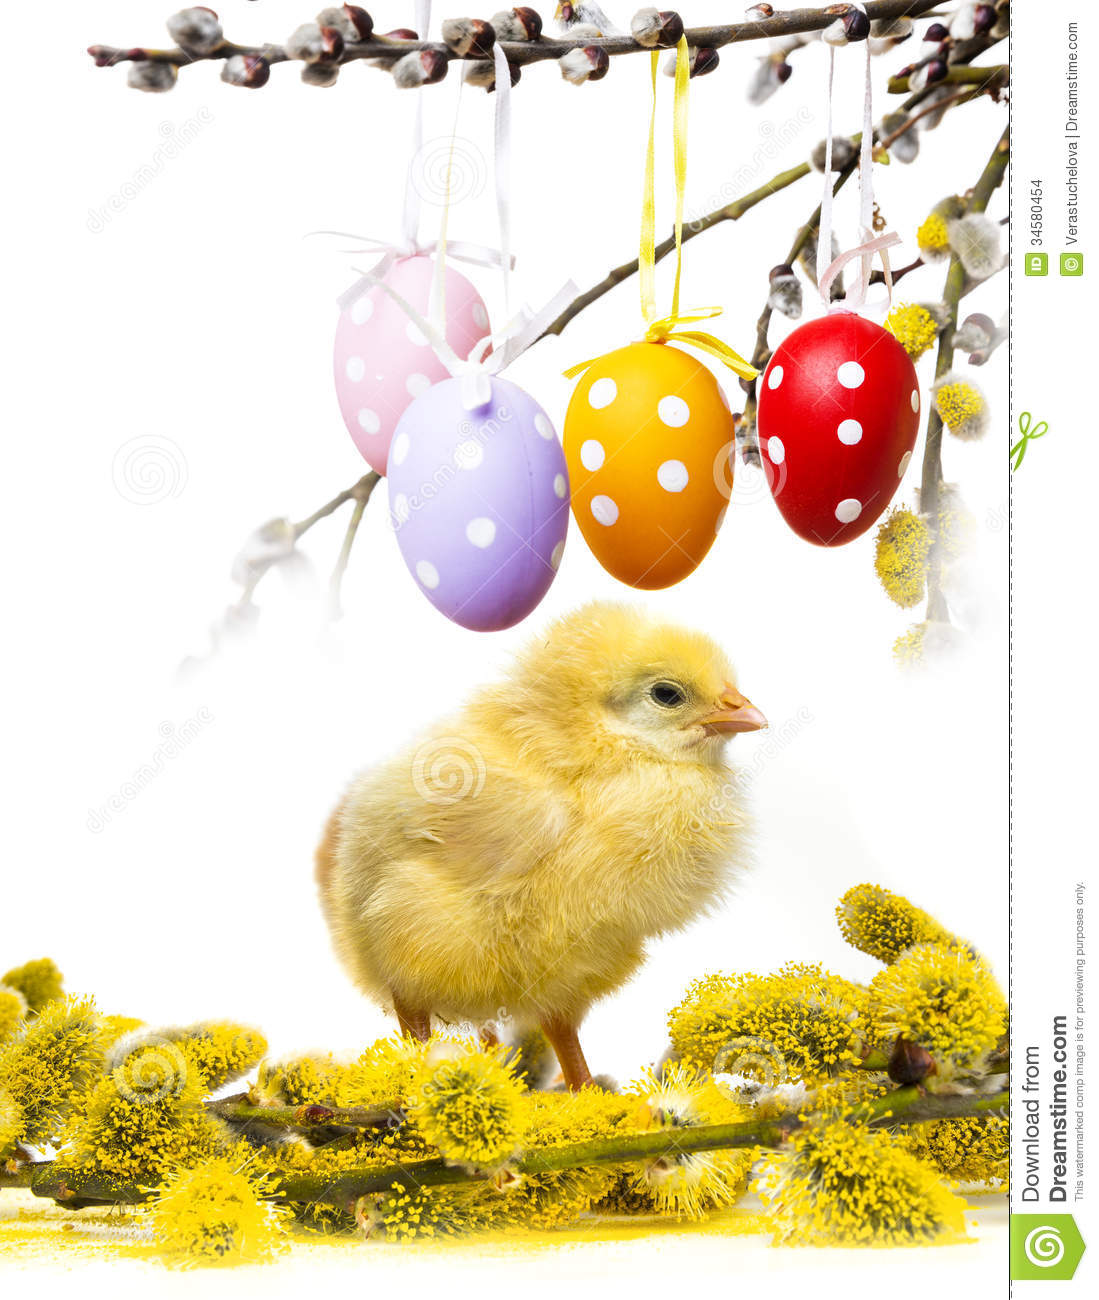 Chicken song download spring free